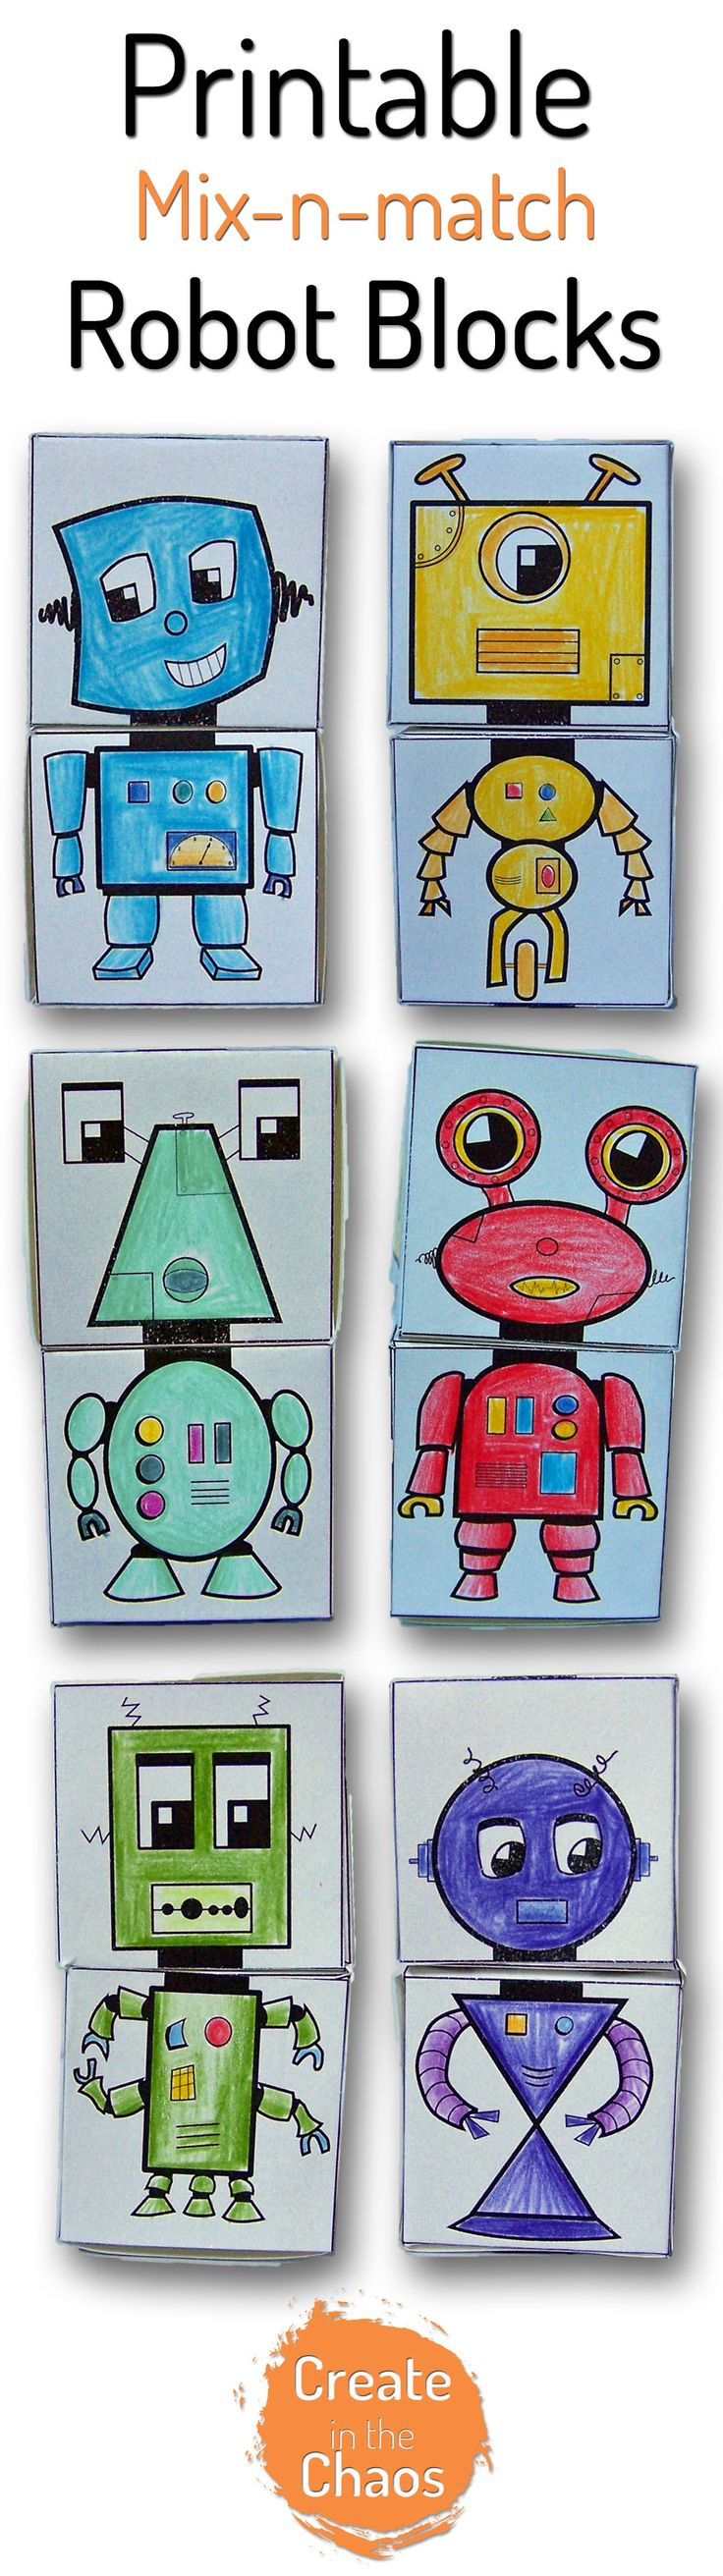 Printable mix-n-match robot blocks www.createinthechaos.com